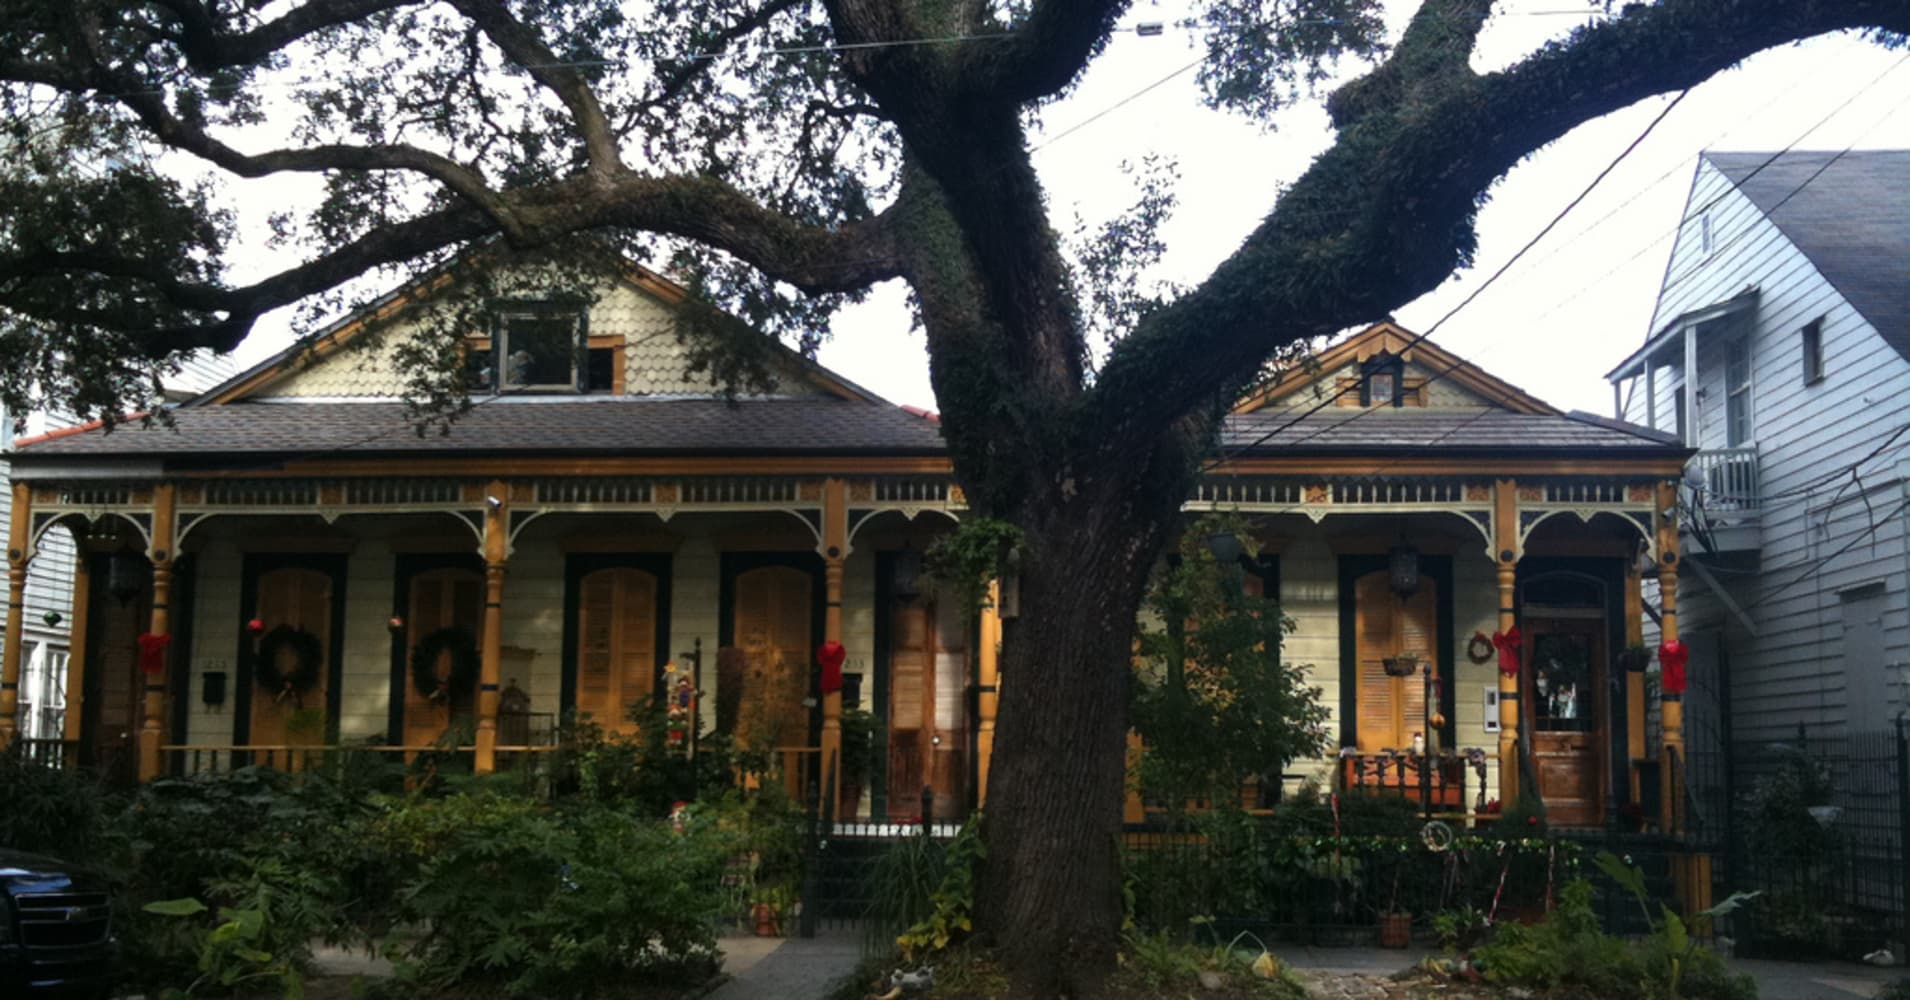 House in Treme, New Orleans. Photo by author.